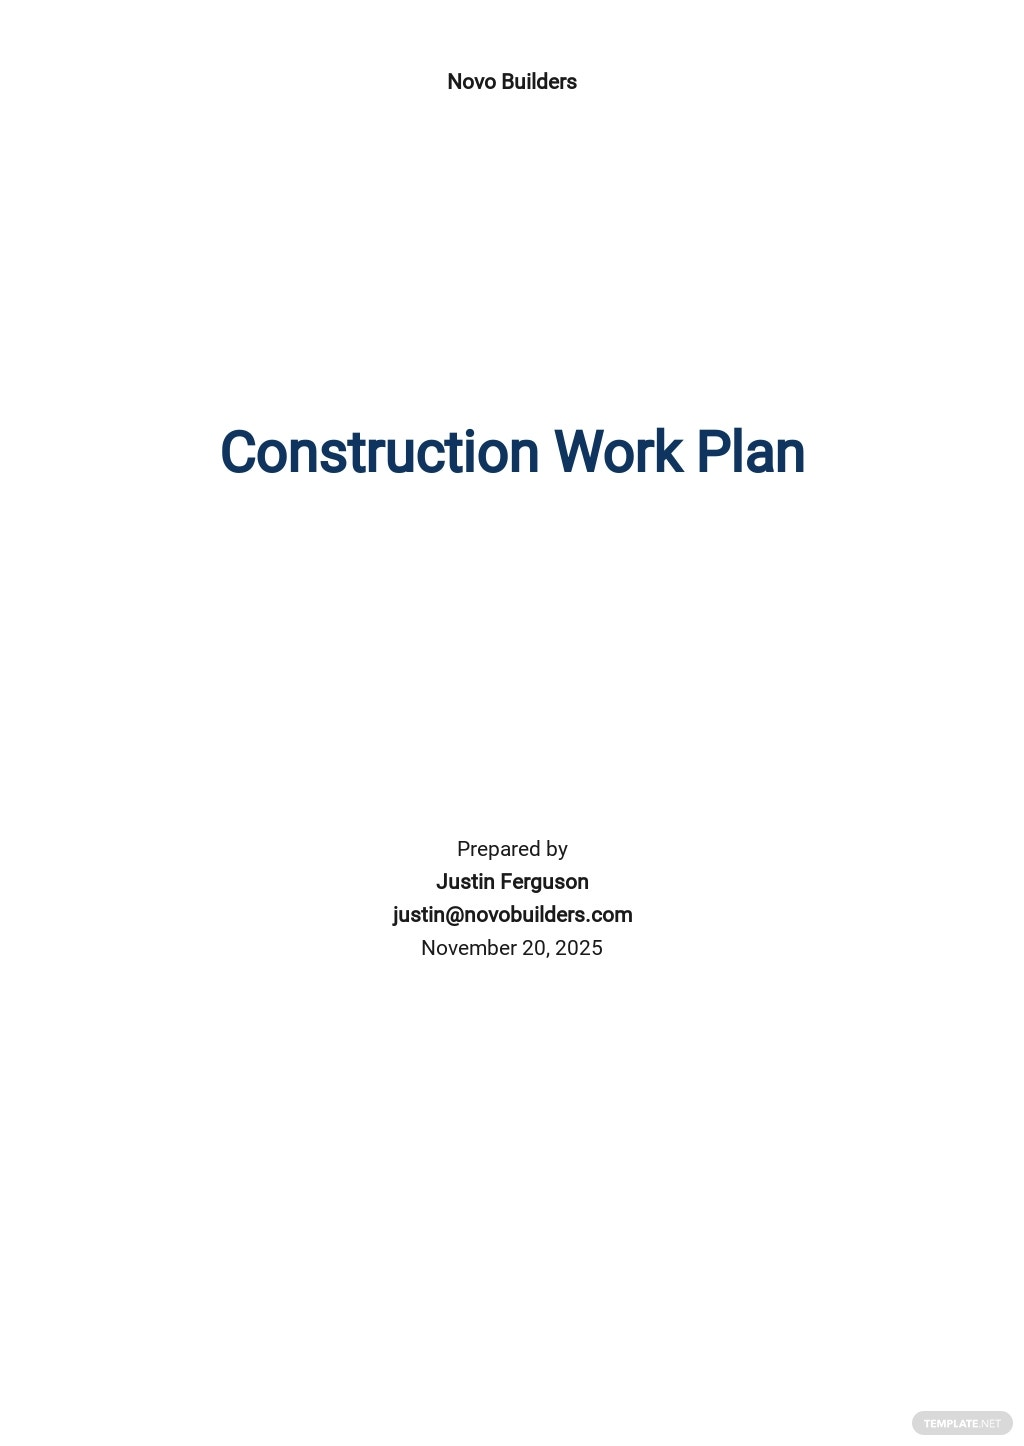 Construction Work Plan Template